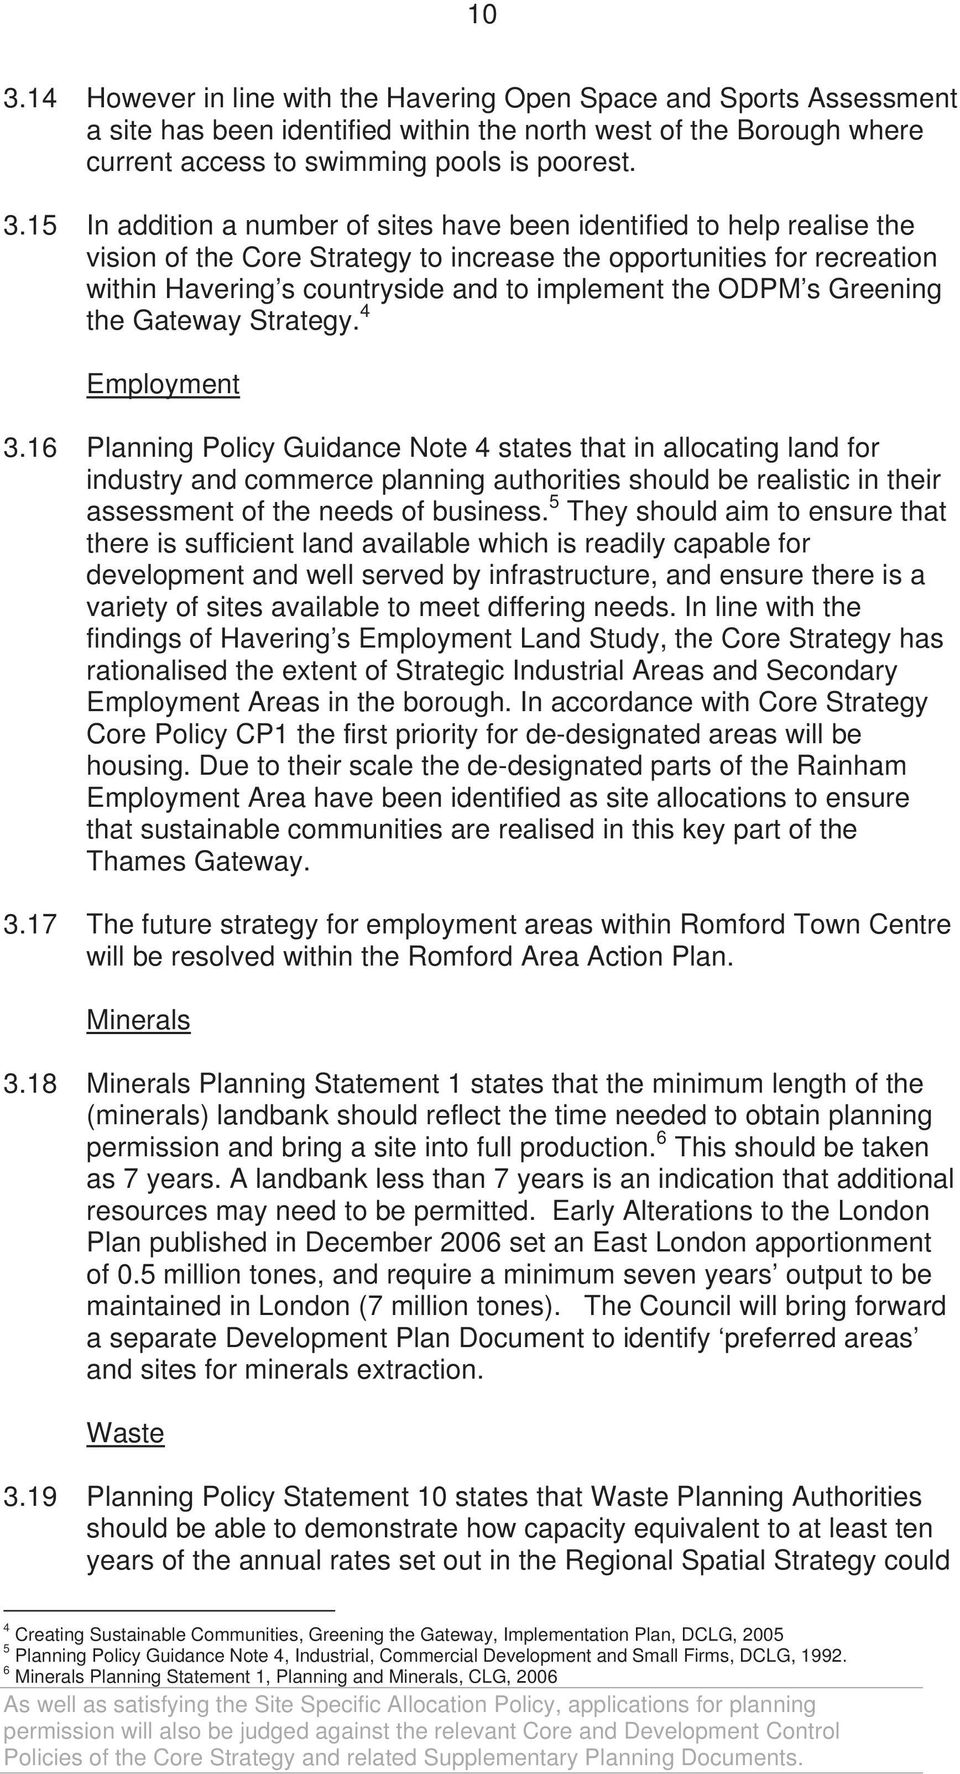 Strategy. mploymet. Plaig Policy Guidace Note states that i allocatig lad for idustry ad commerce plaig authorities should be realistic i their assessmet of the eeds of busiess.